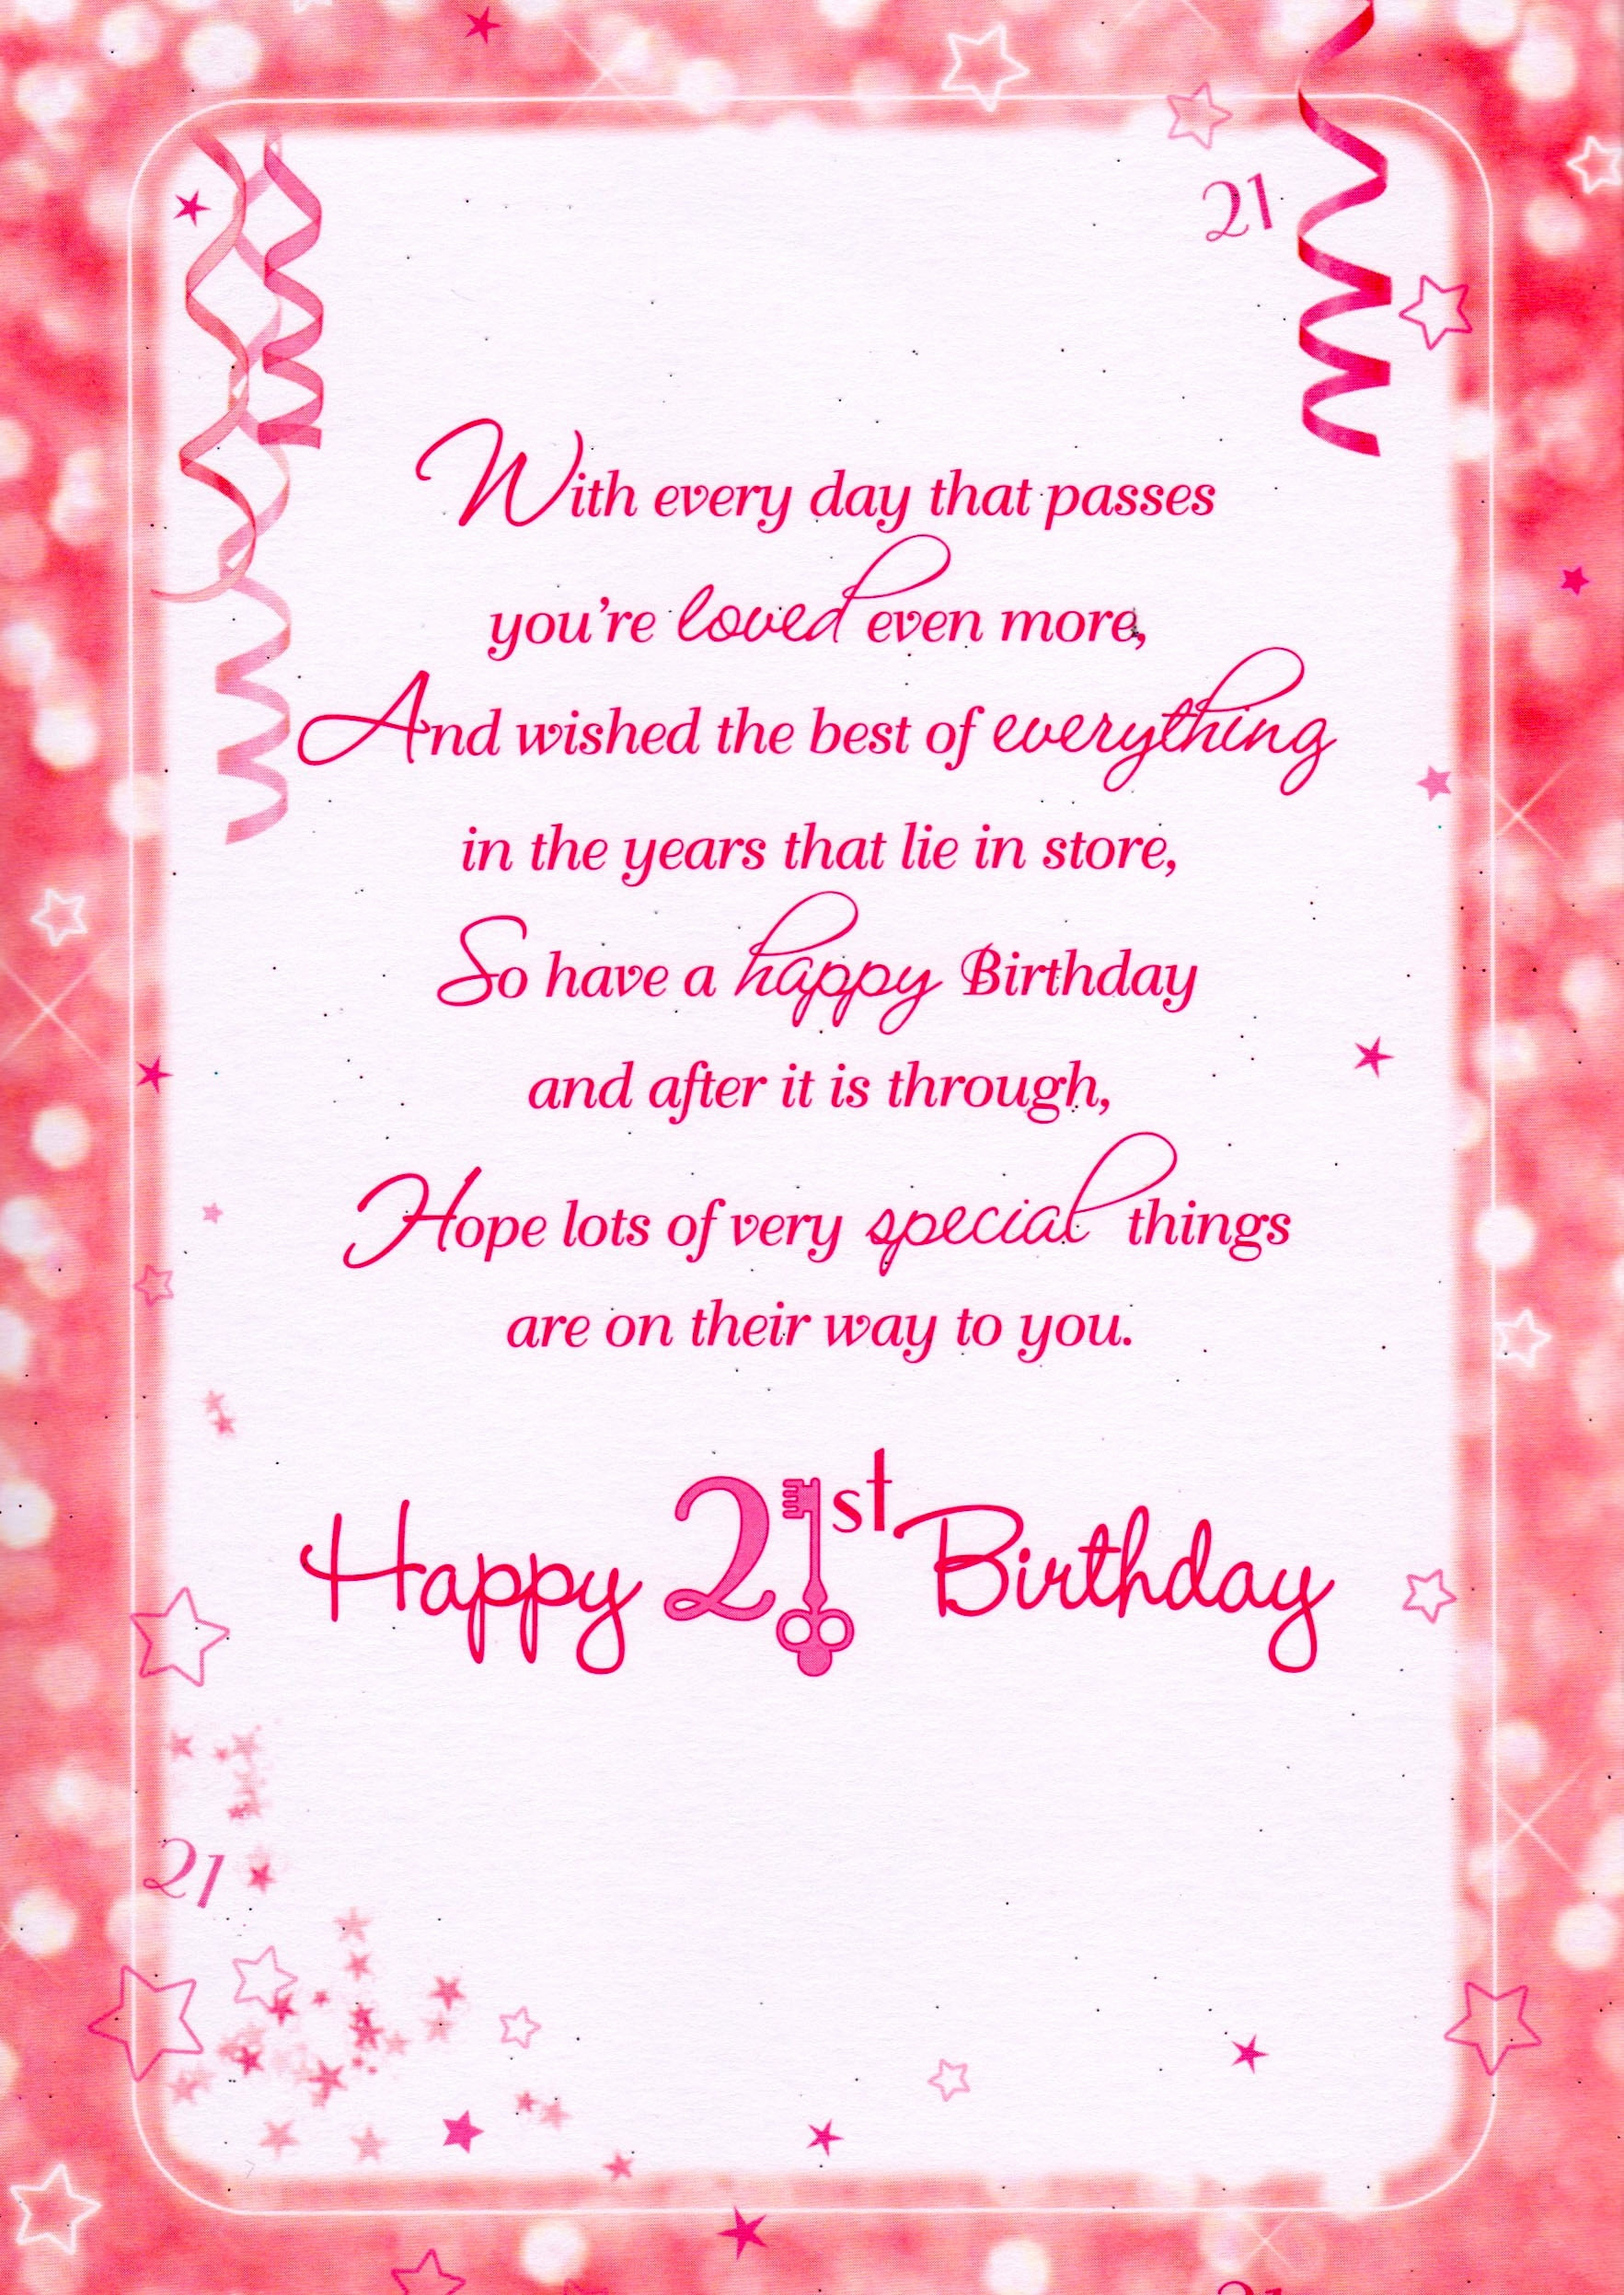 21st birthday message for girlfriend ; things-to-do-for-your-21st-birthday-elegant-happy-21st-birthday-wishes-for-girlfriend-happy-birthday-of-things-to-do-for-your-21st-birthday